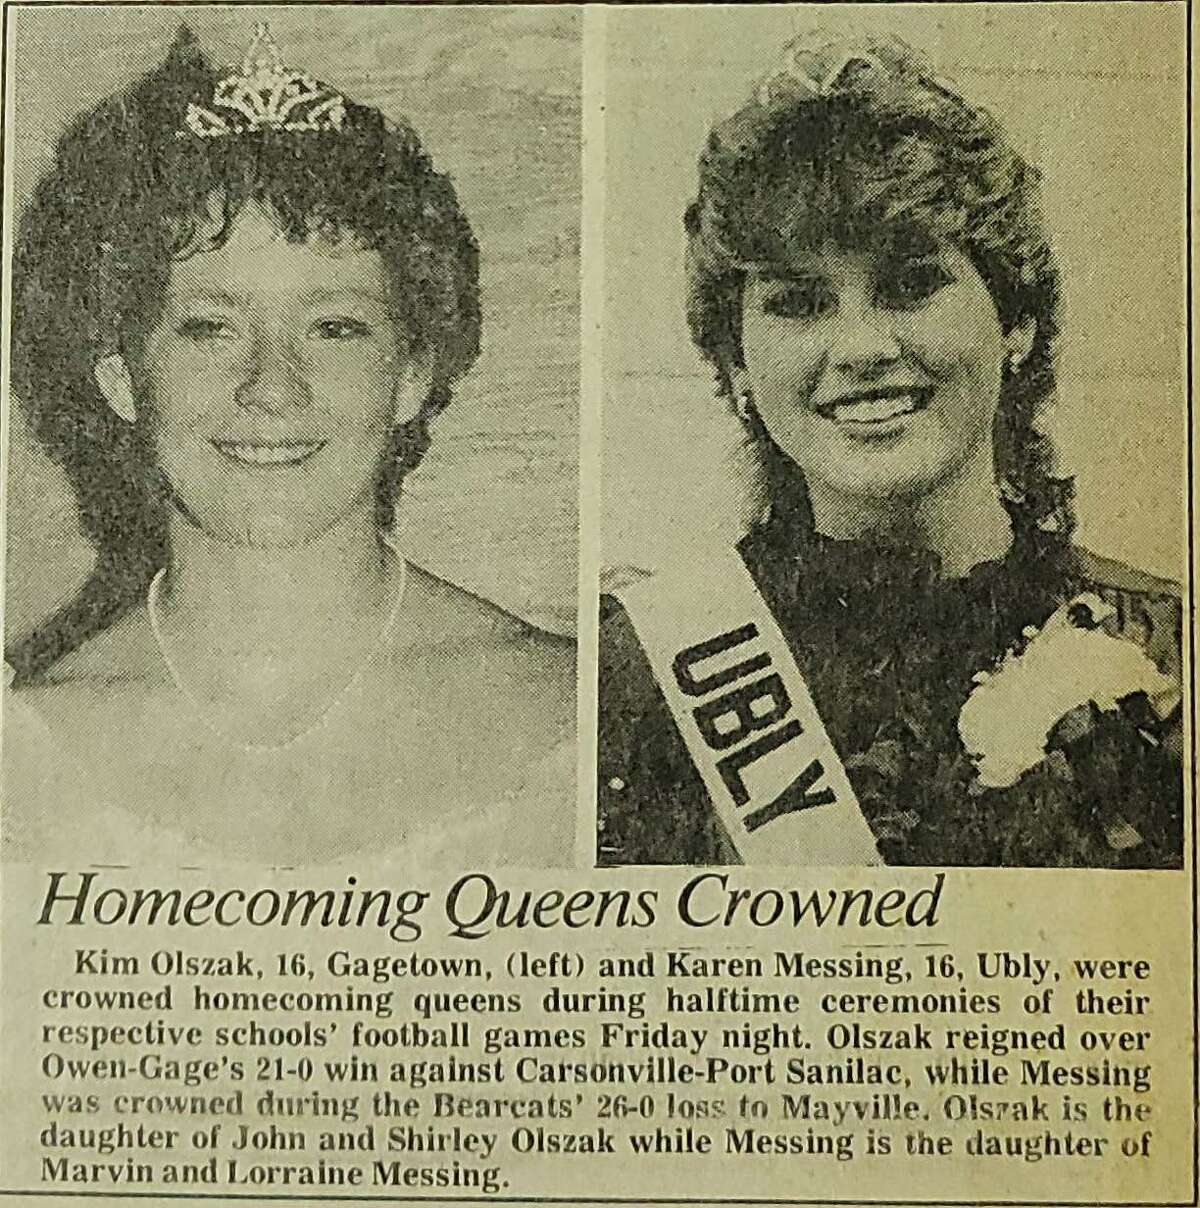 For this week's Tribune Throwback we take a look in the archives from the month of October 1984.